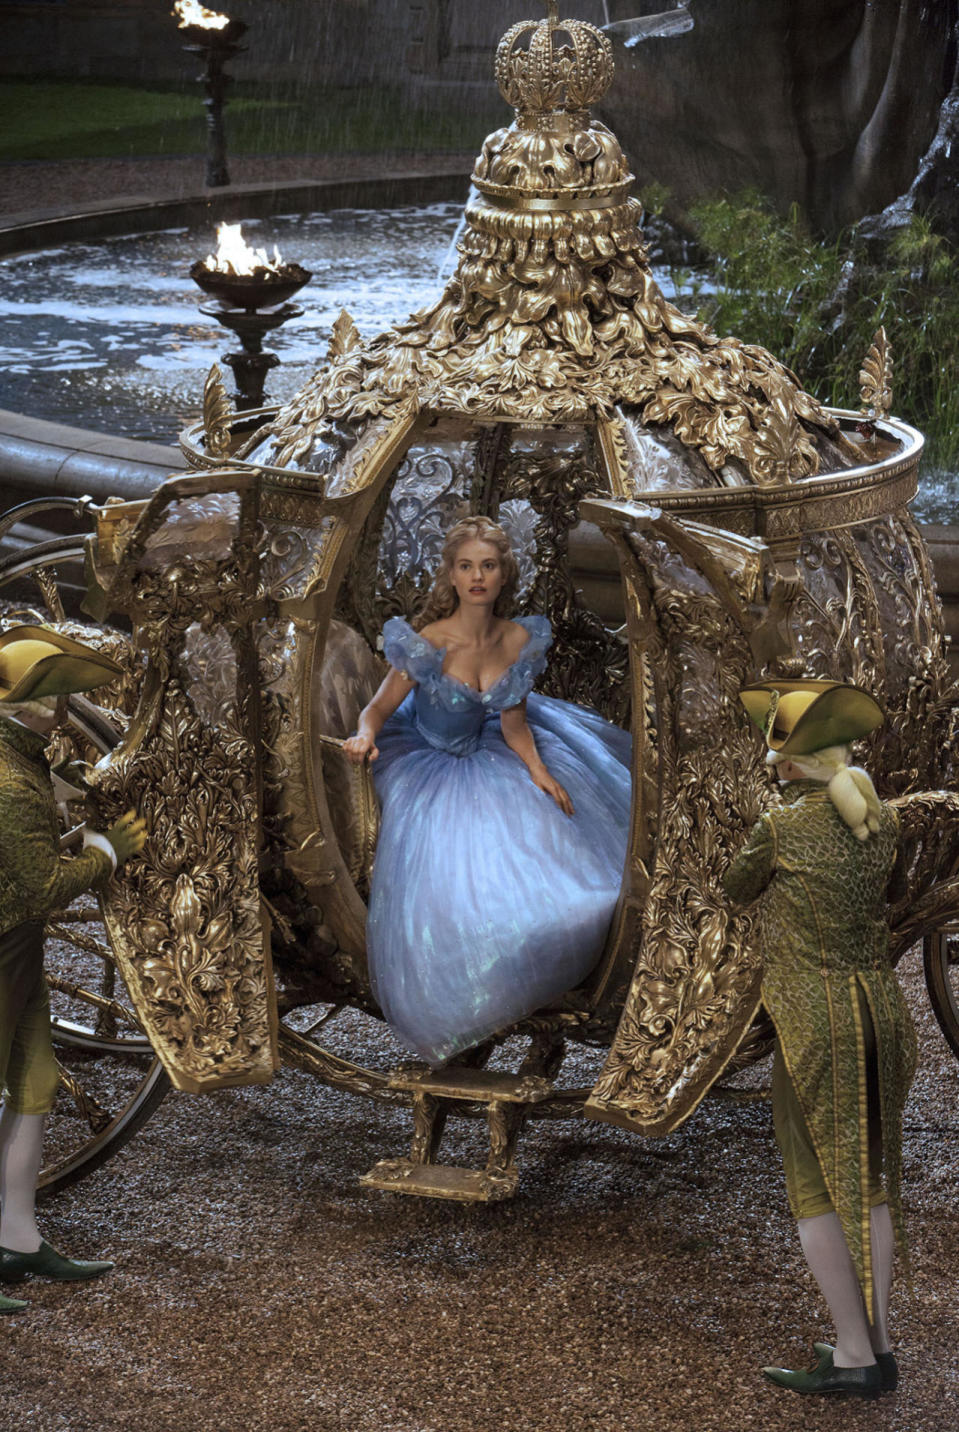 <p>Slowly, studios are catching on to the idea that their half-female movie-going population would like more films about women. And that audience is showing its appreciation: 10 of this year's 25 biggest movies featured female leads or co-leads, including <i>Star Wars: The Force Awakens</i> (No. 2), <i>Inside Out </i>(No. 4), <i>The Hunger Games: Mockingjay – Part 2 </i>(No. 7), and <i>Cinderella </i>(No. 9, pictured). (Photo: Disney)</p>